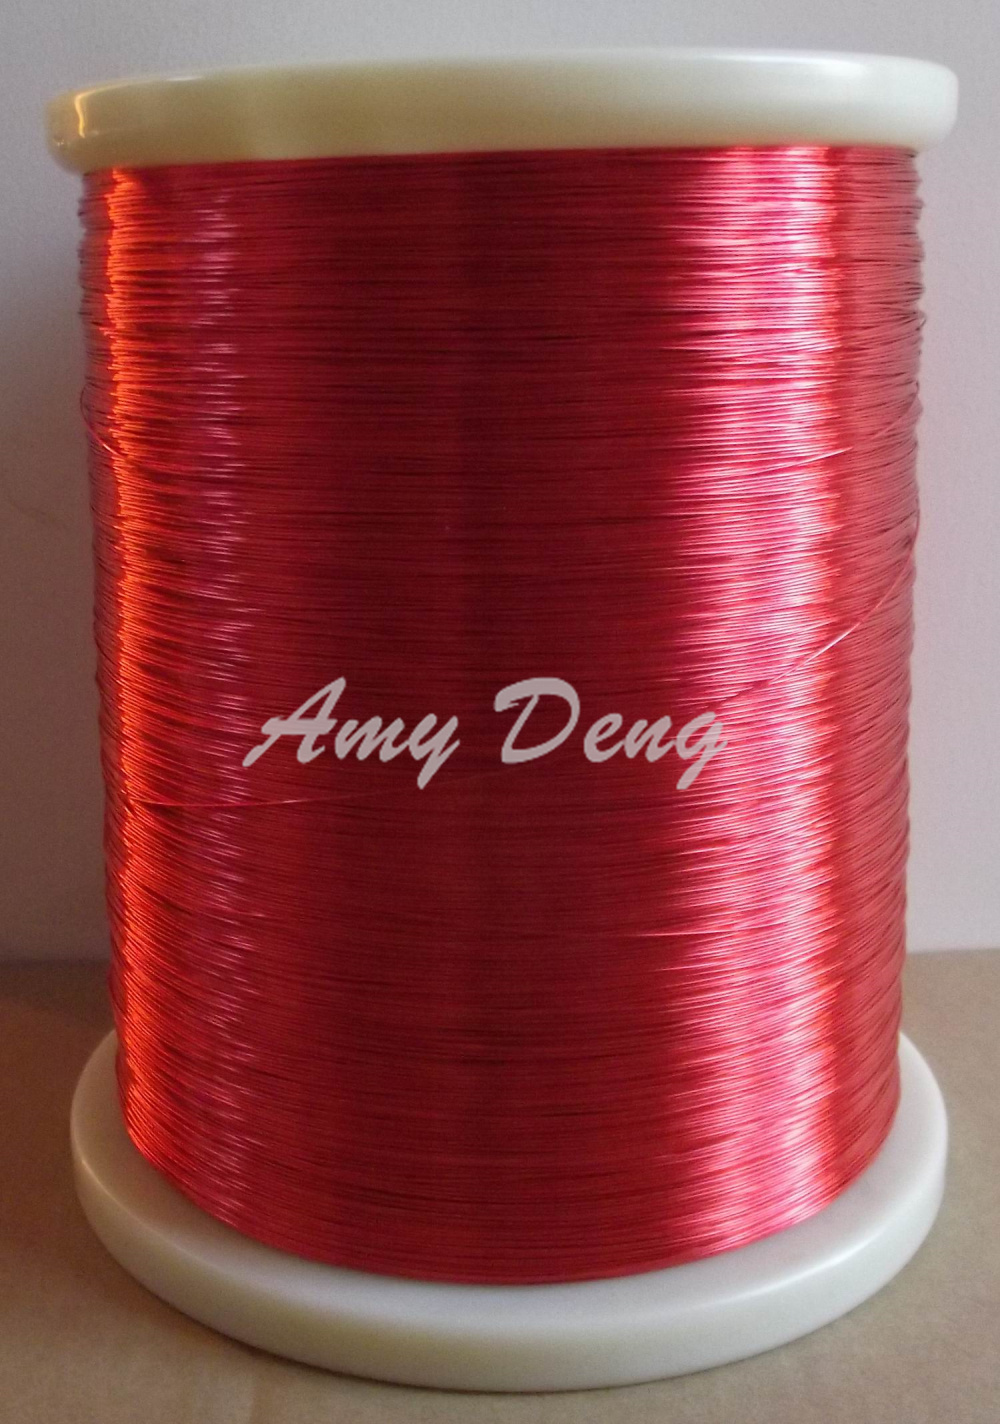 200meters lot 0 6 mm red new polyurethane enamel covered wire QA 1 155 copper 2uew